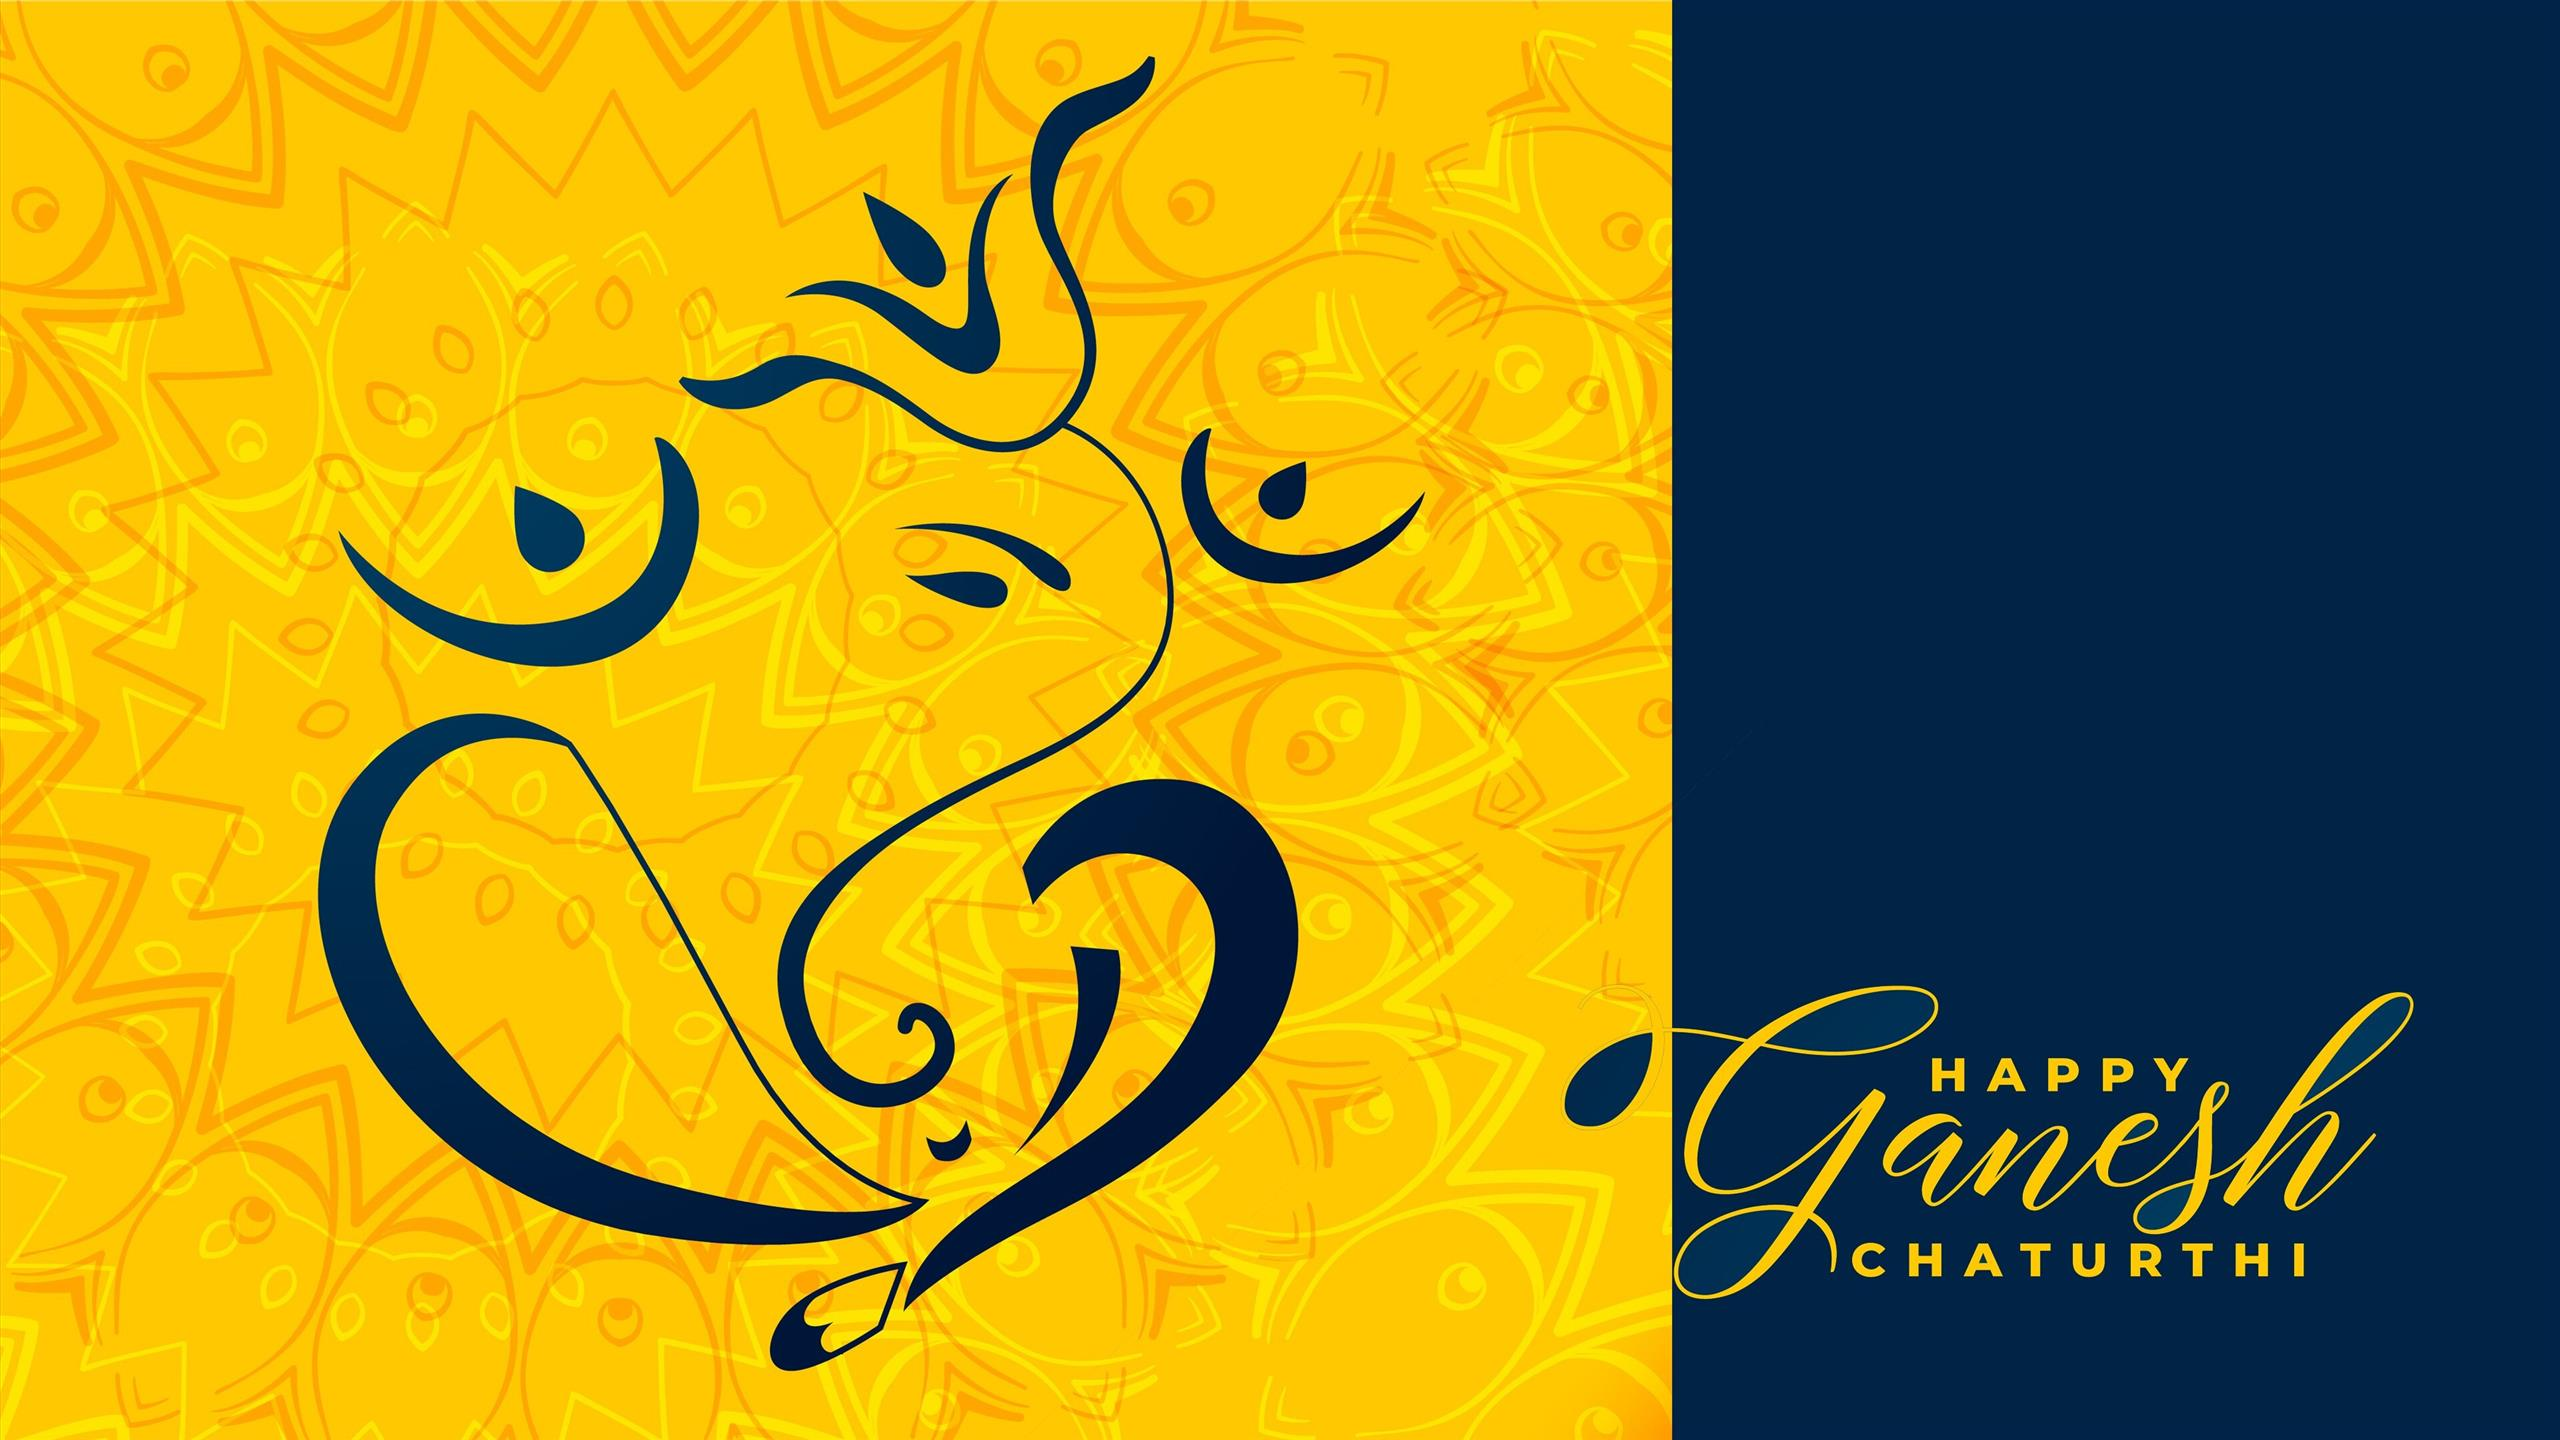 2560x1440 Happy Ganesh Chaturthi 4K Wallpapers